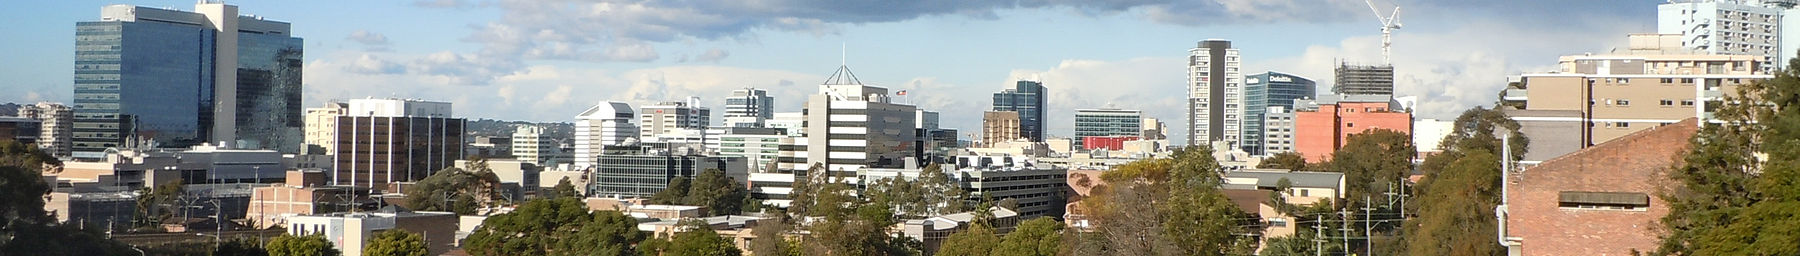 Parramatta skyline from the west August 2012 Banner.jpg